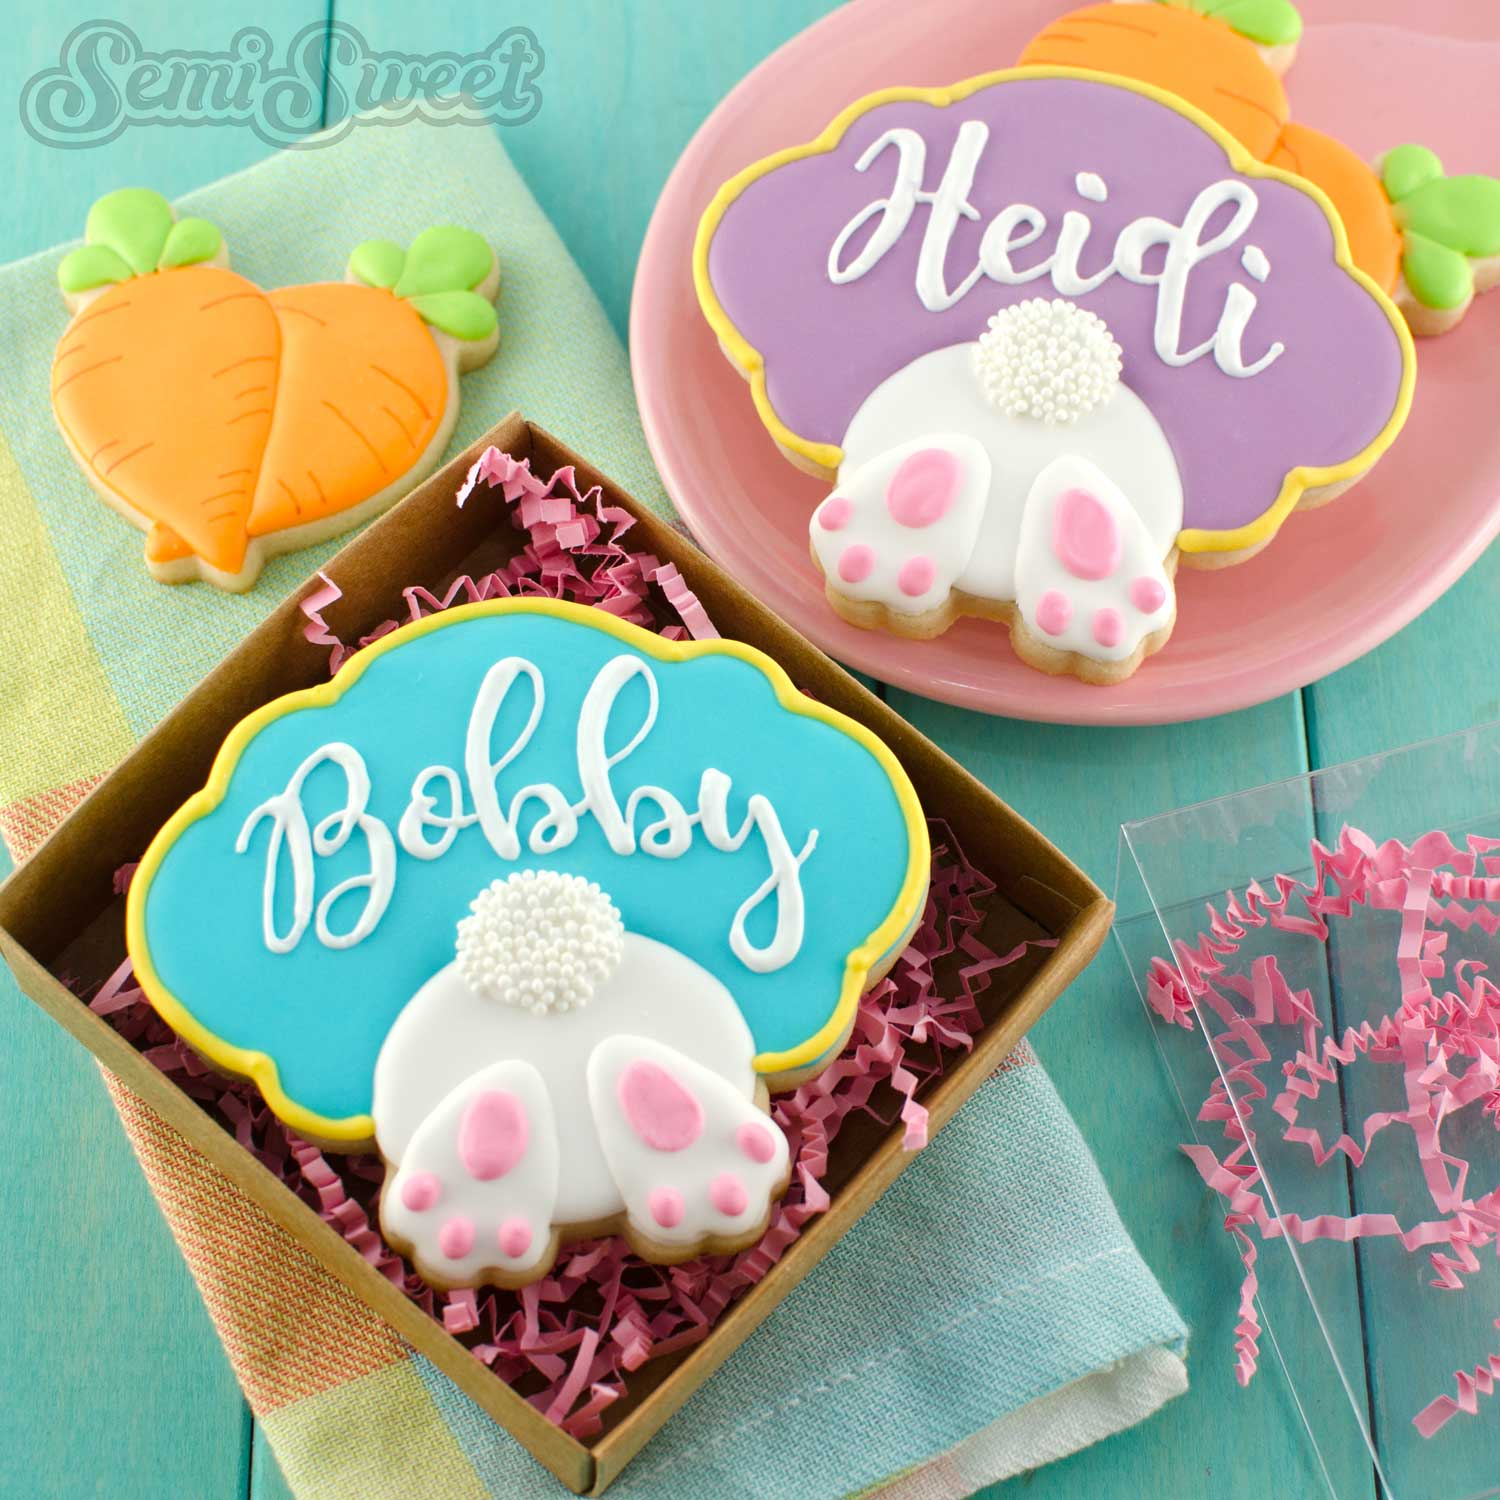 New Easter Cookie Cutters and Designs